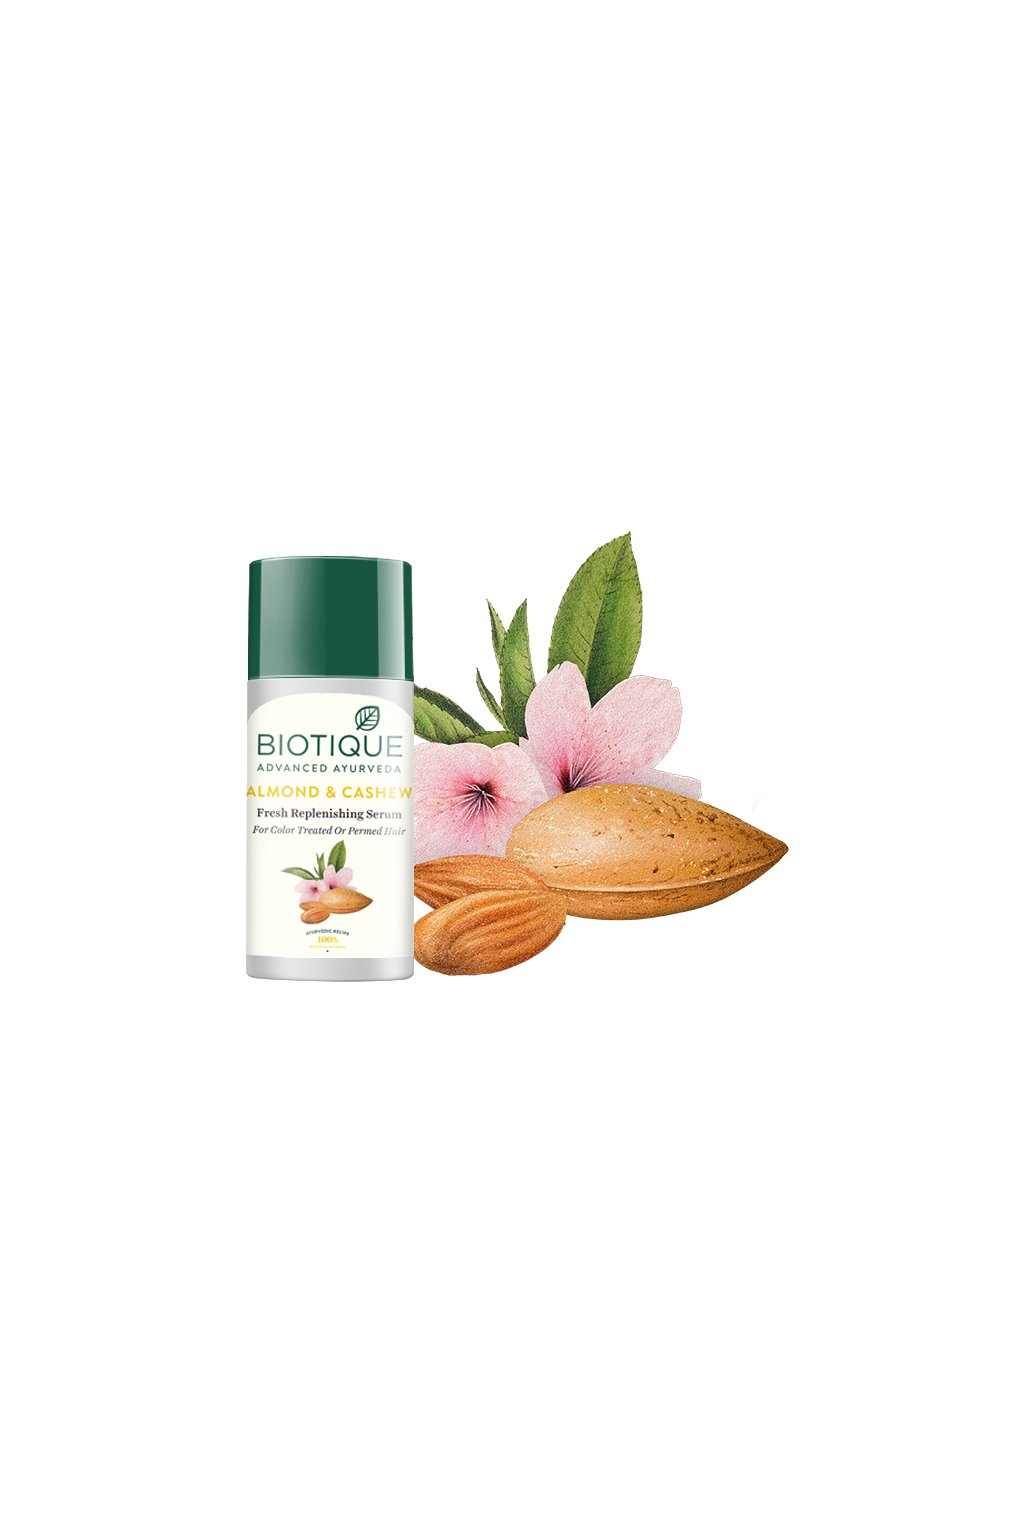 Almond and cashew refresh replenishing serum 40 ml 2